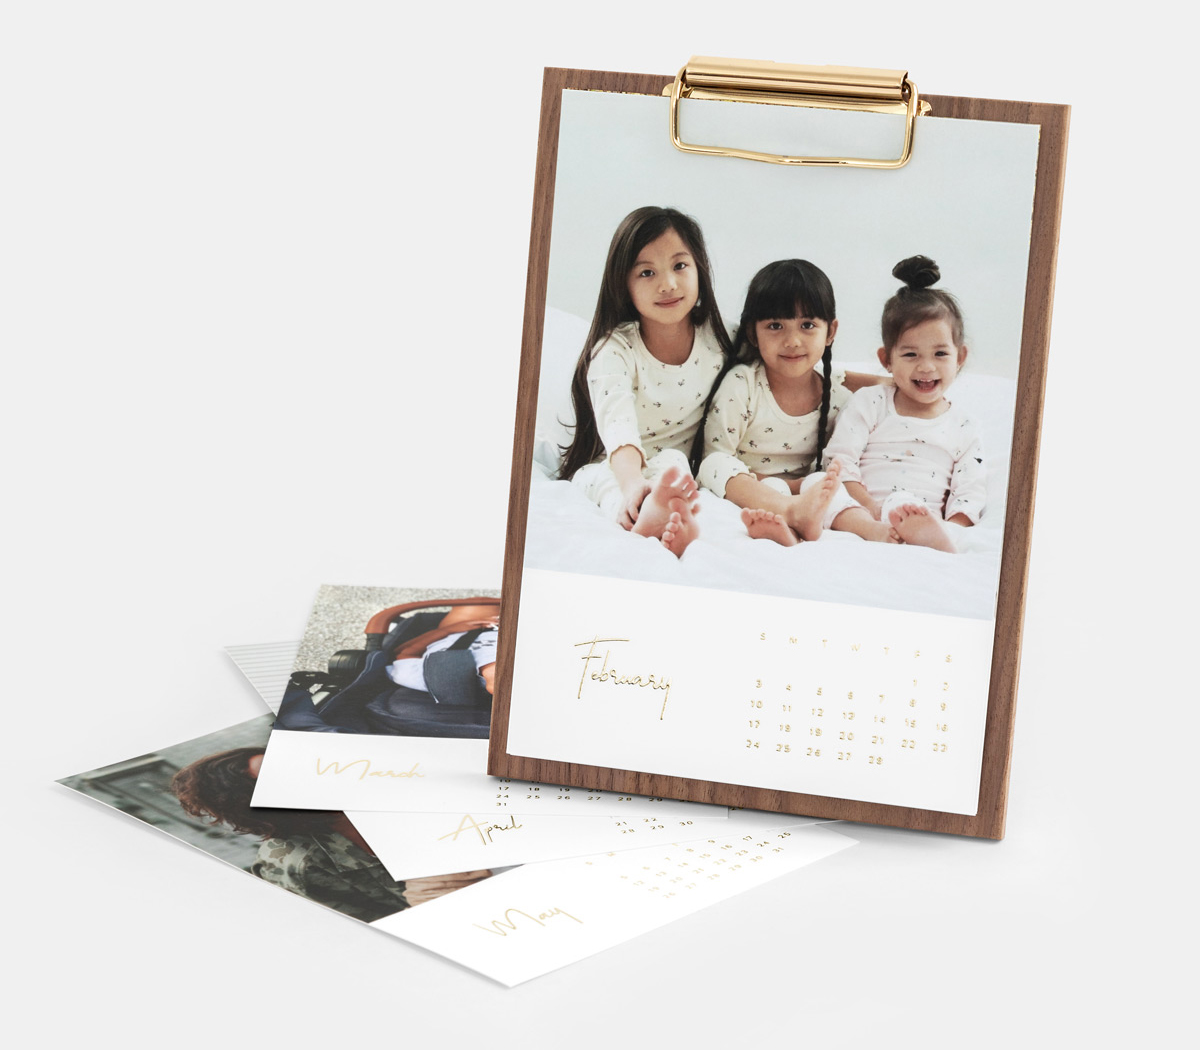 Walnut Desktop Photo Calendar featuring photo of three little girls